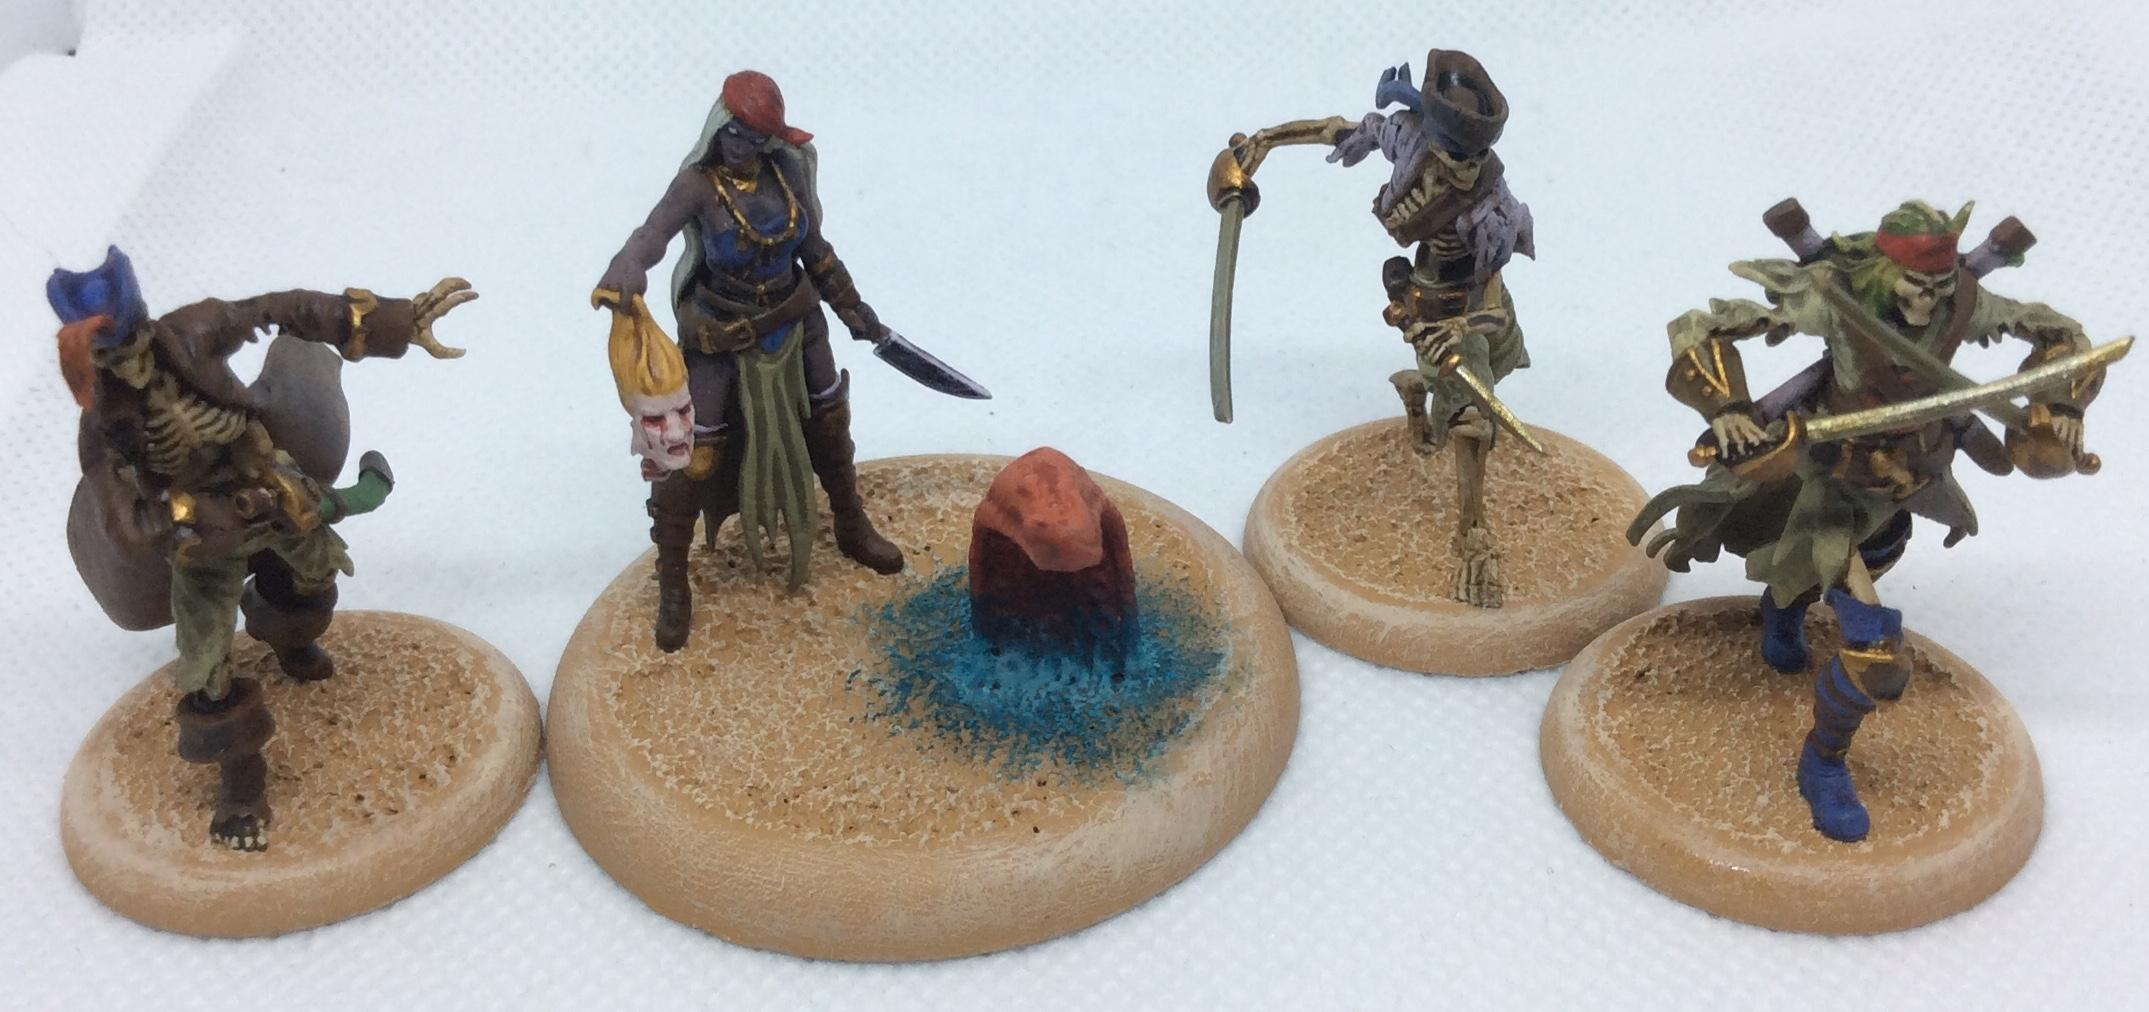 Malifaux, Pirate, Resurrectionists, Skeletons, Undead, Wyrd